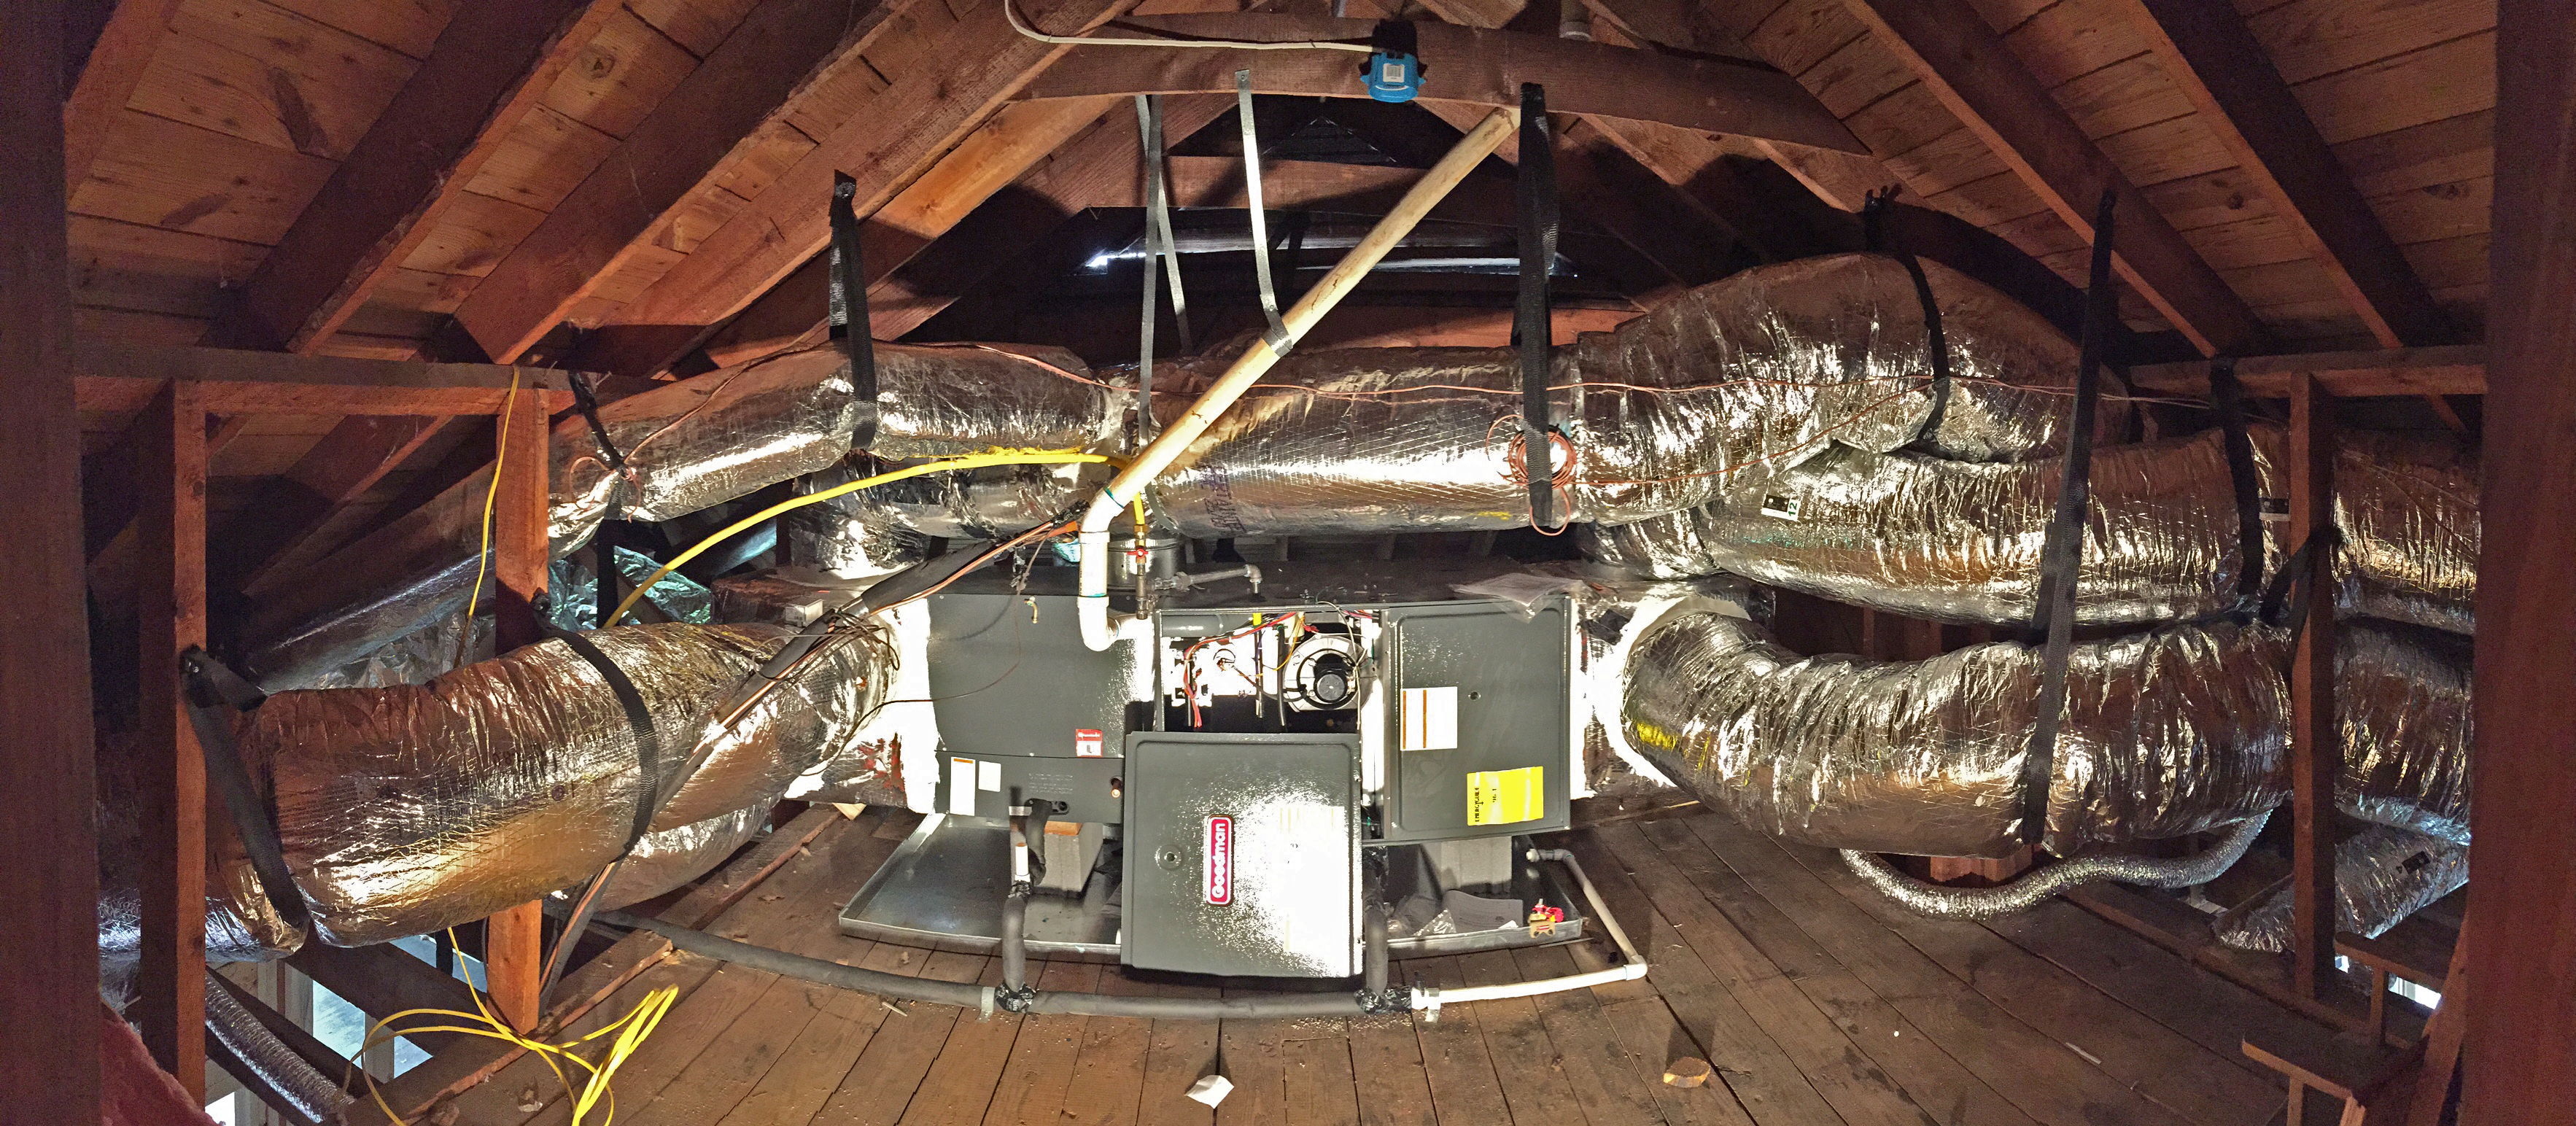 #ABA120 March 2015 The Newton Nest Recommended 9557 Ducted Air Conditioning Installation Central Coast pics with 3532x1544 px on helpvideos.info - Air Conditioners, Air Coolers and more